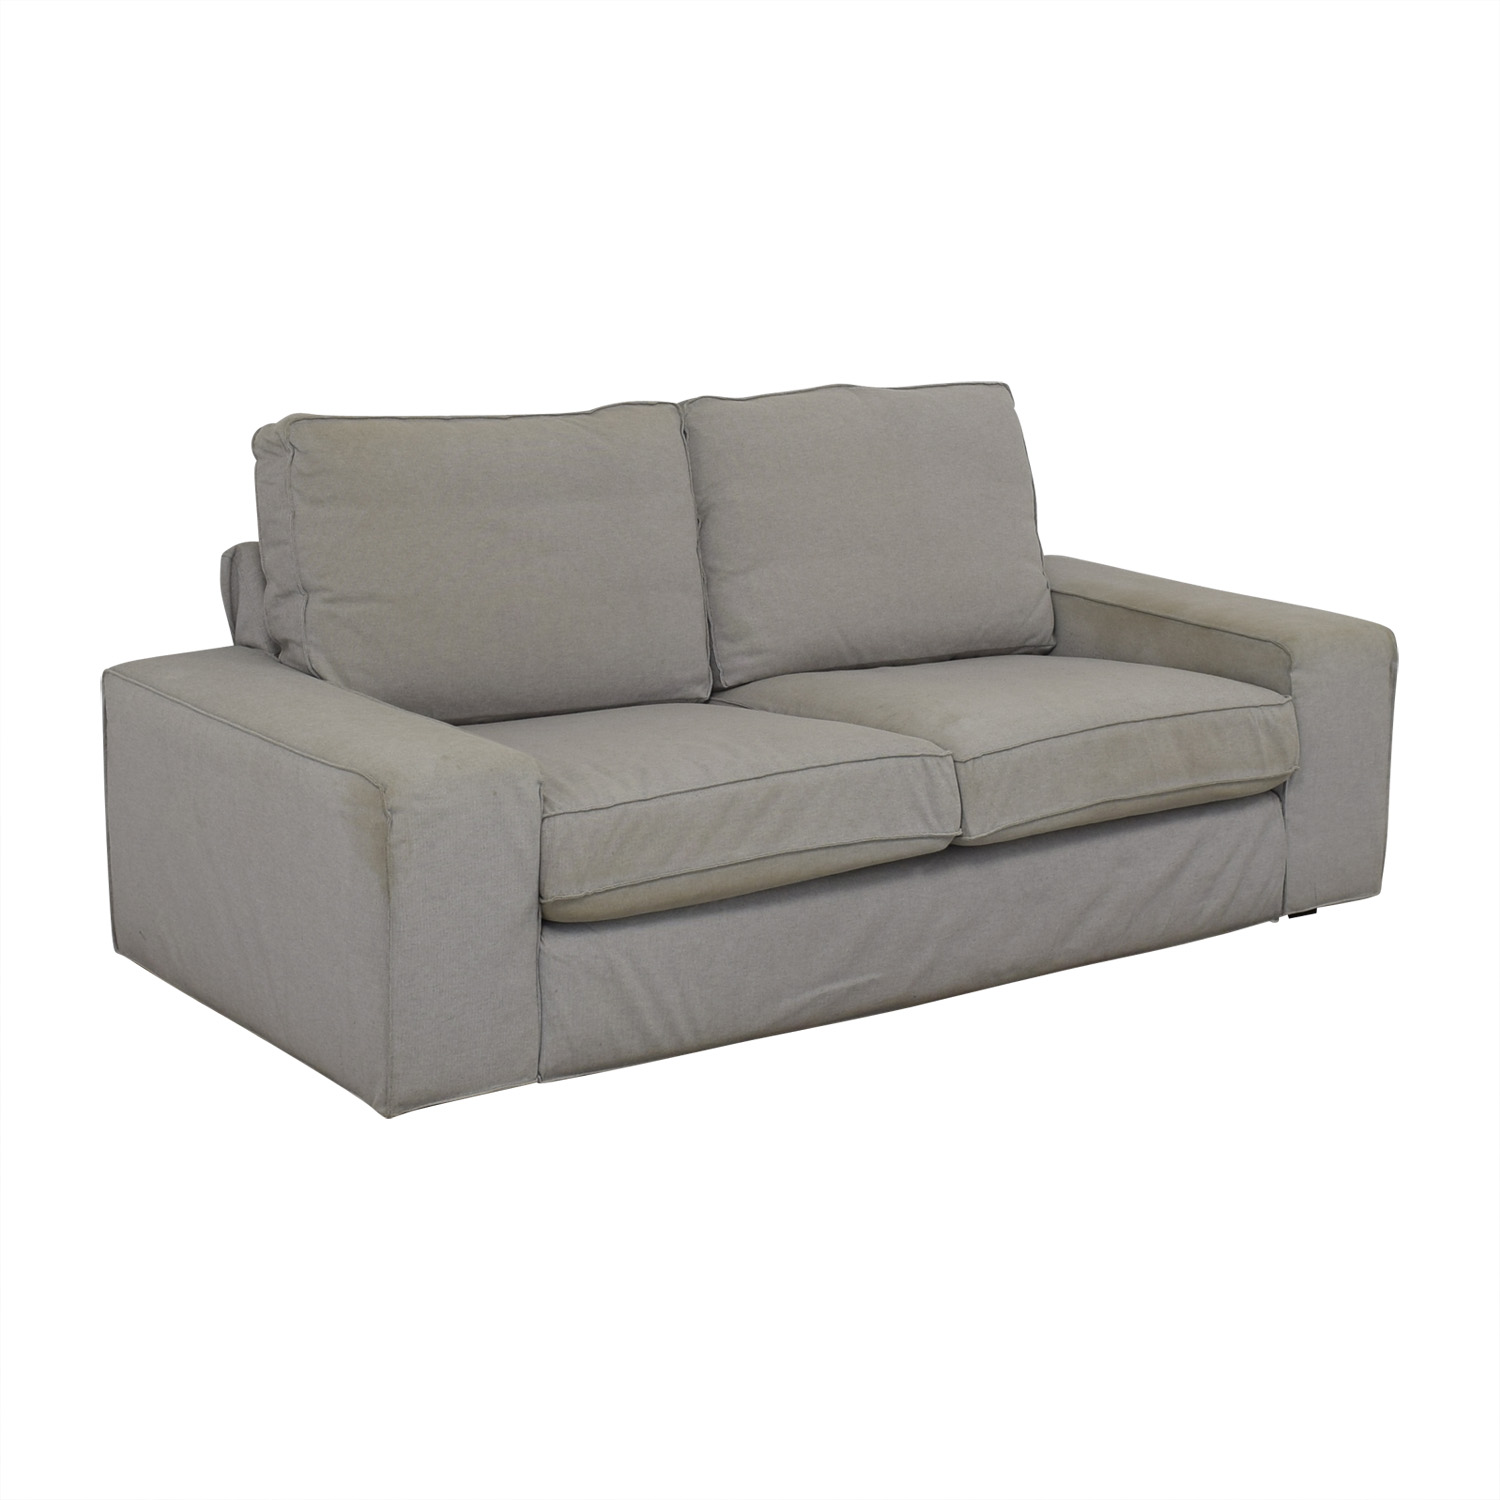 IKEA IKEA Kivik Light Grey Sofa discount